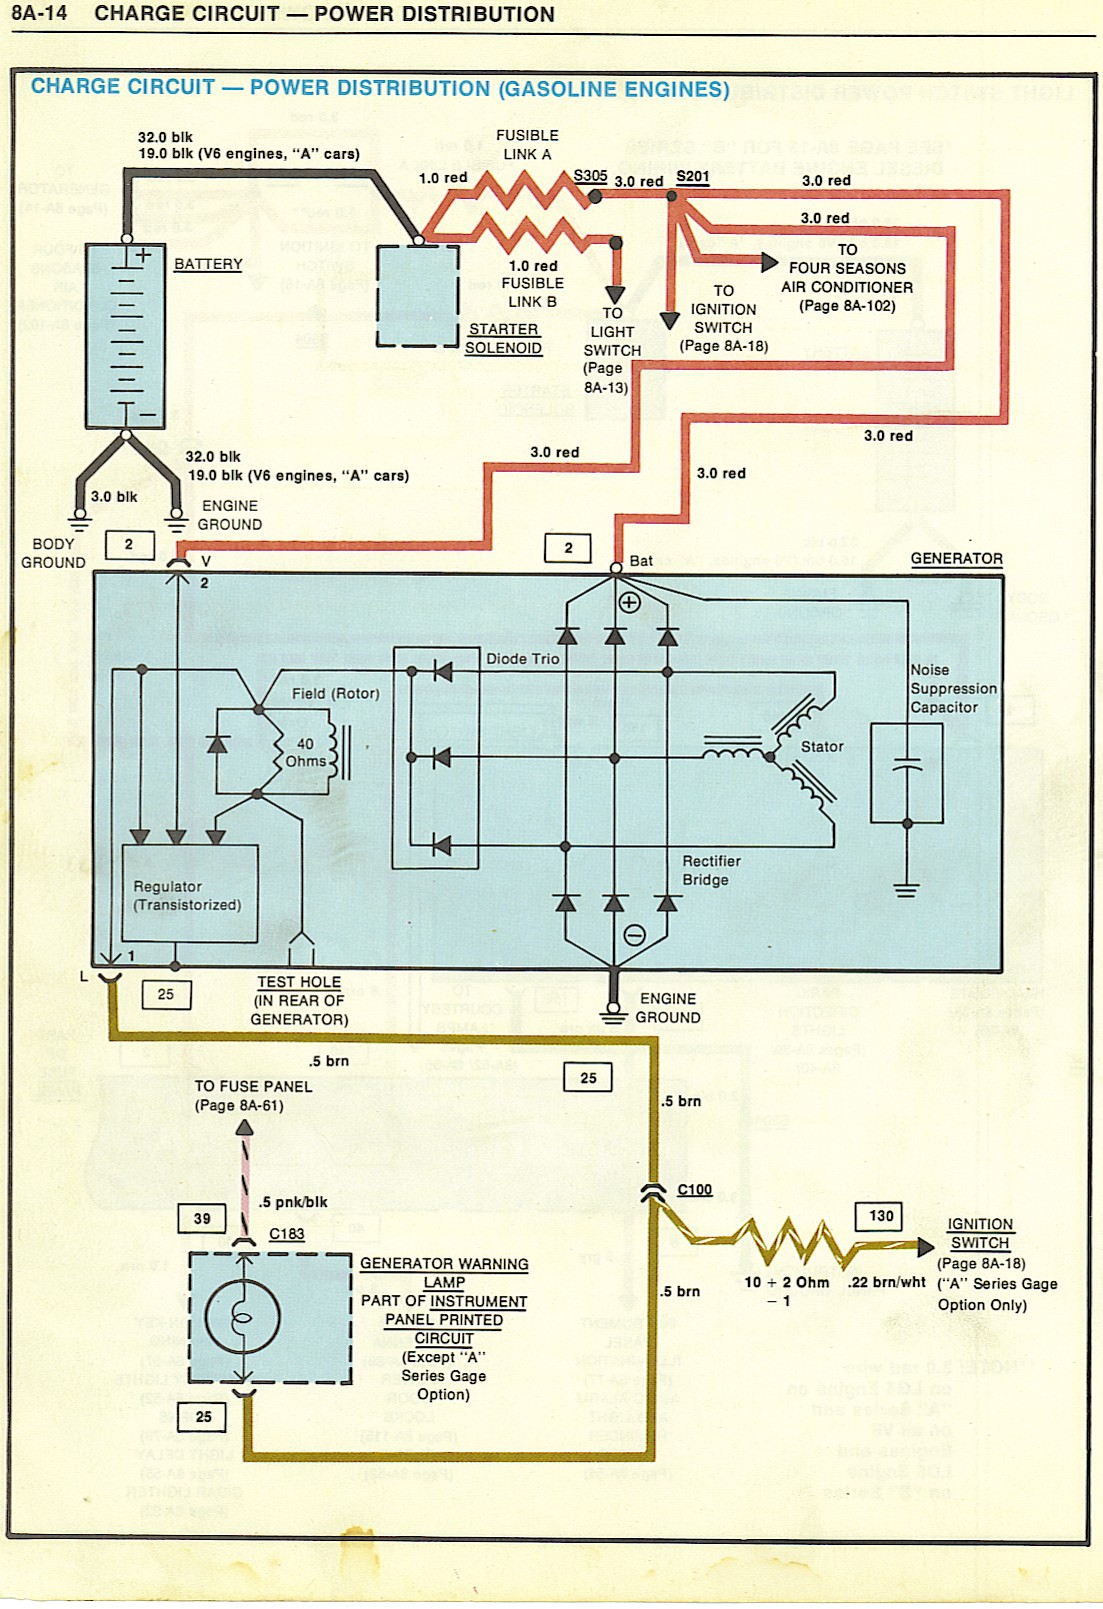 wiring diagrams corolla wiring diagram 80 cutlass wiring diagram #12